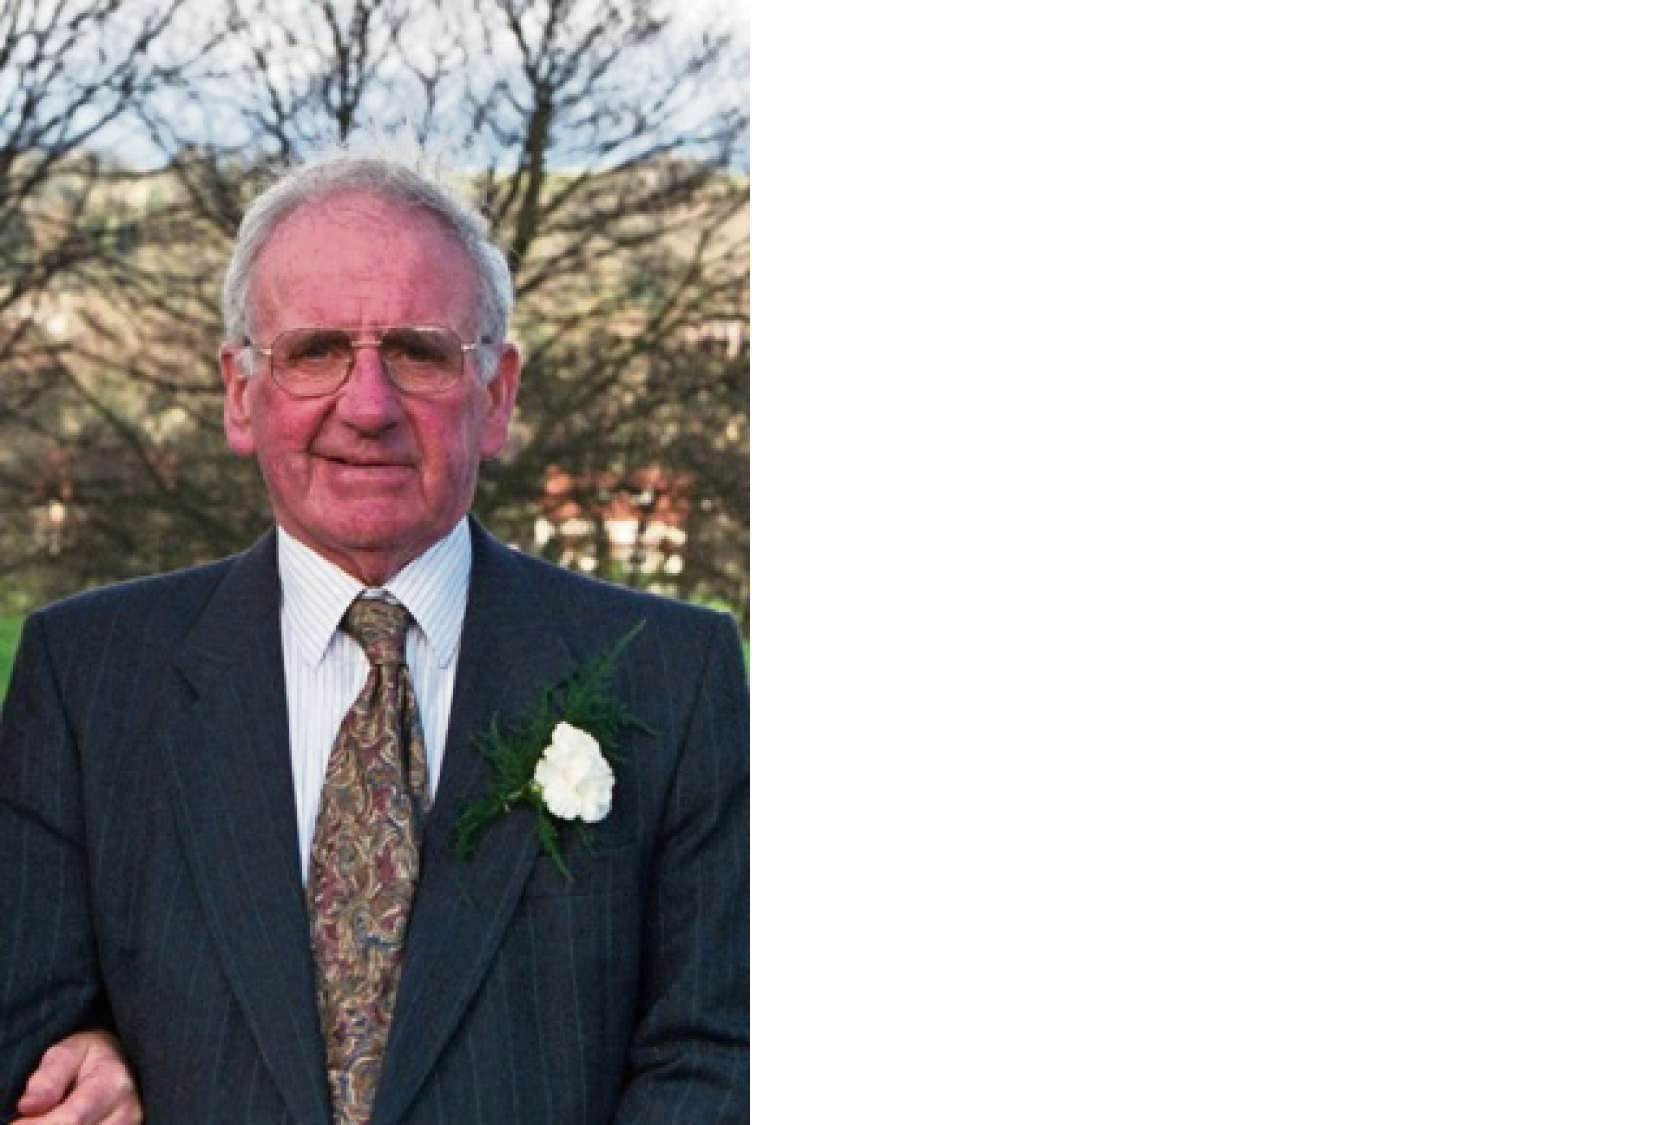 Addingham businessman Jack Clay, who has died aged 85